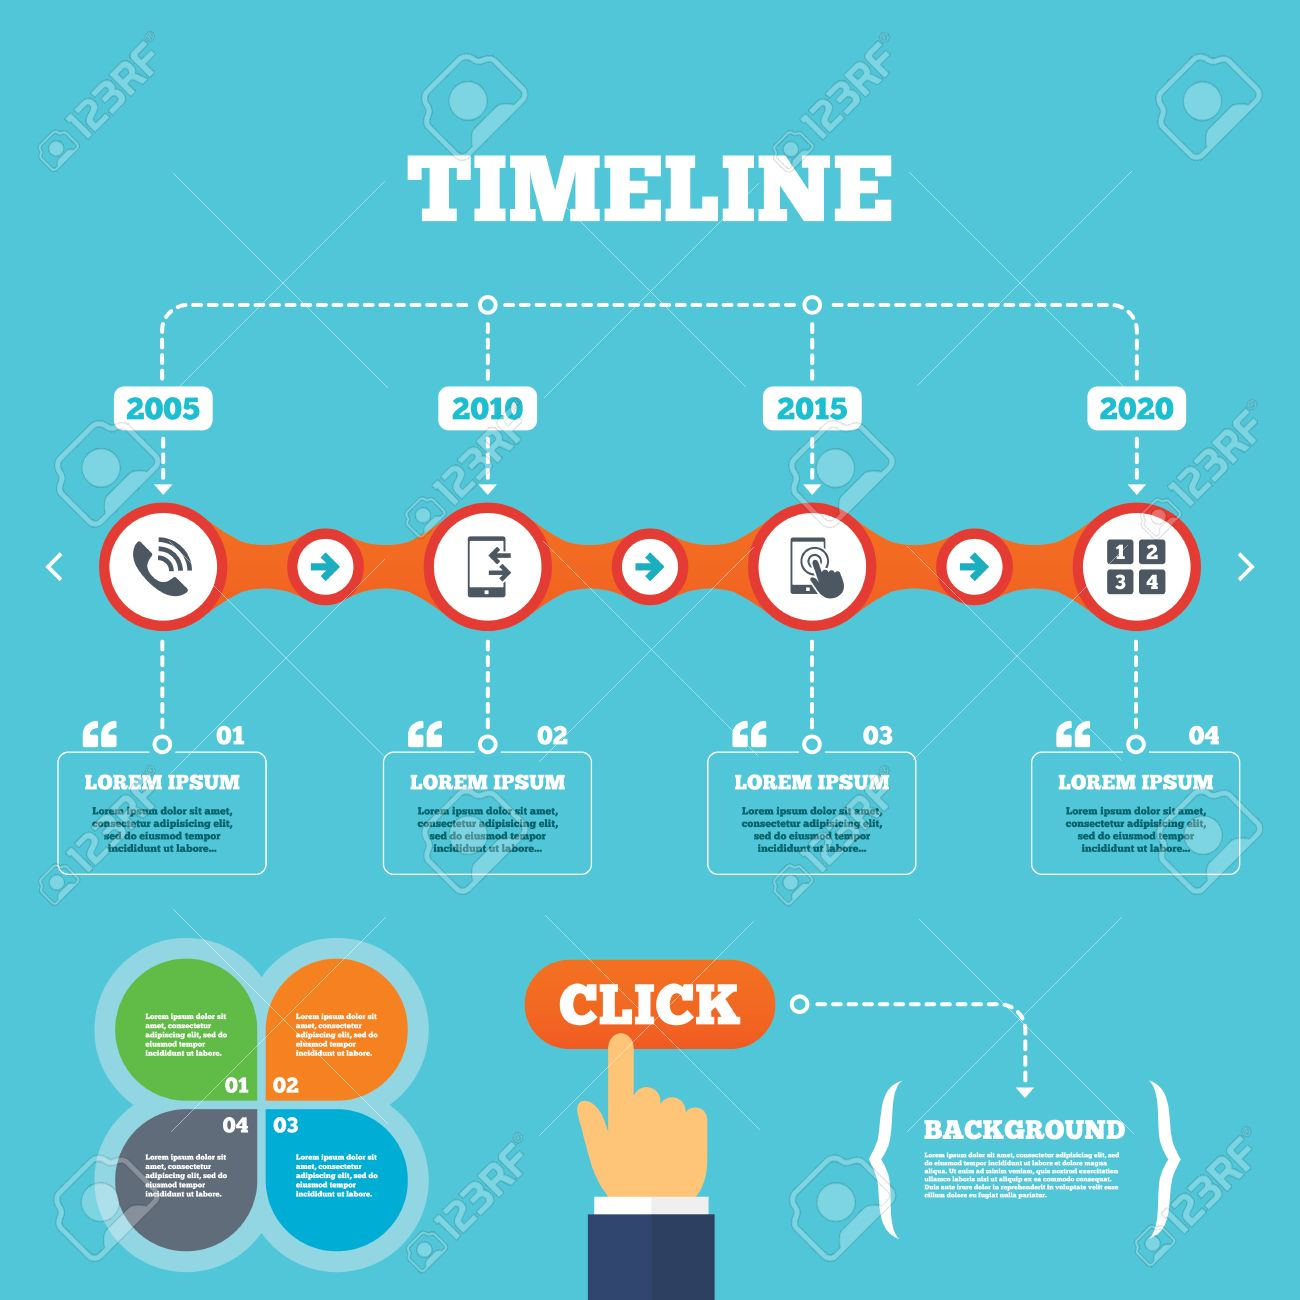 Cell Phone Quotes Timeline With Arrows And Quotesphone Iconstouch Screen